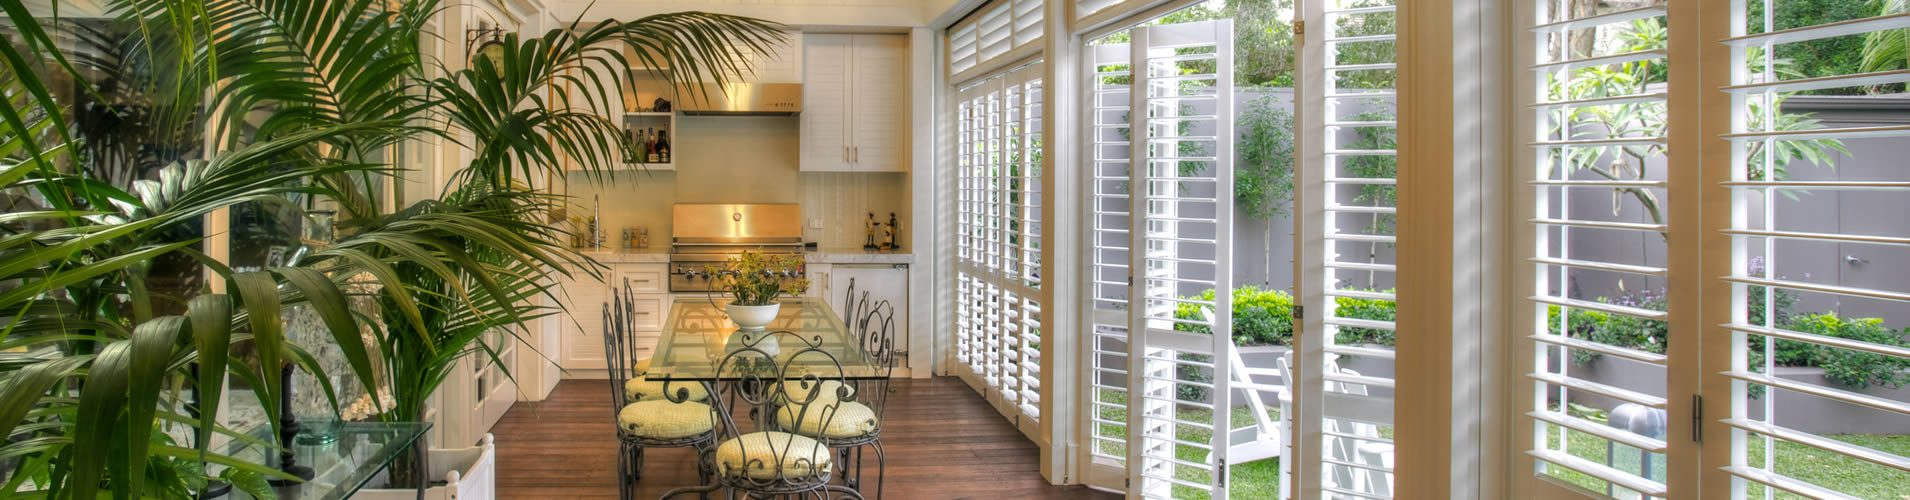 Outdoor Plantation Shutters - Austin, TX